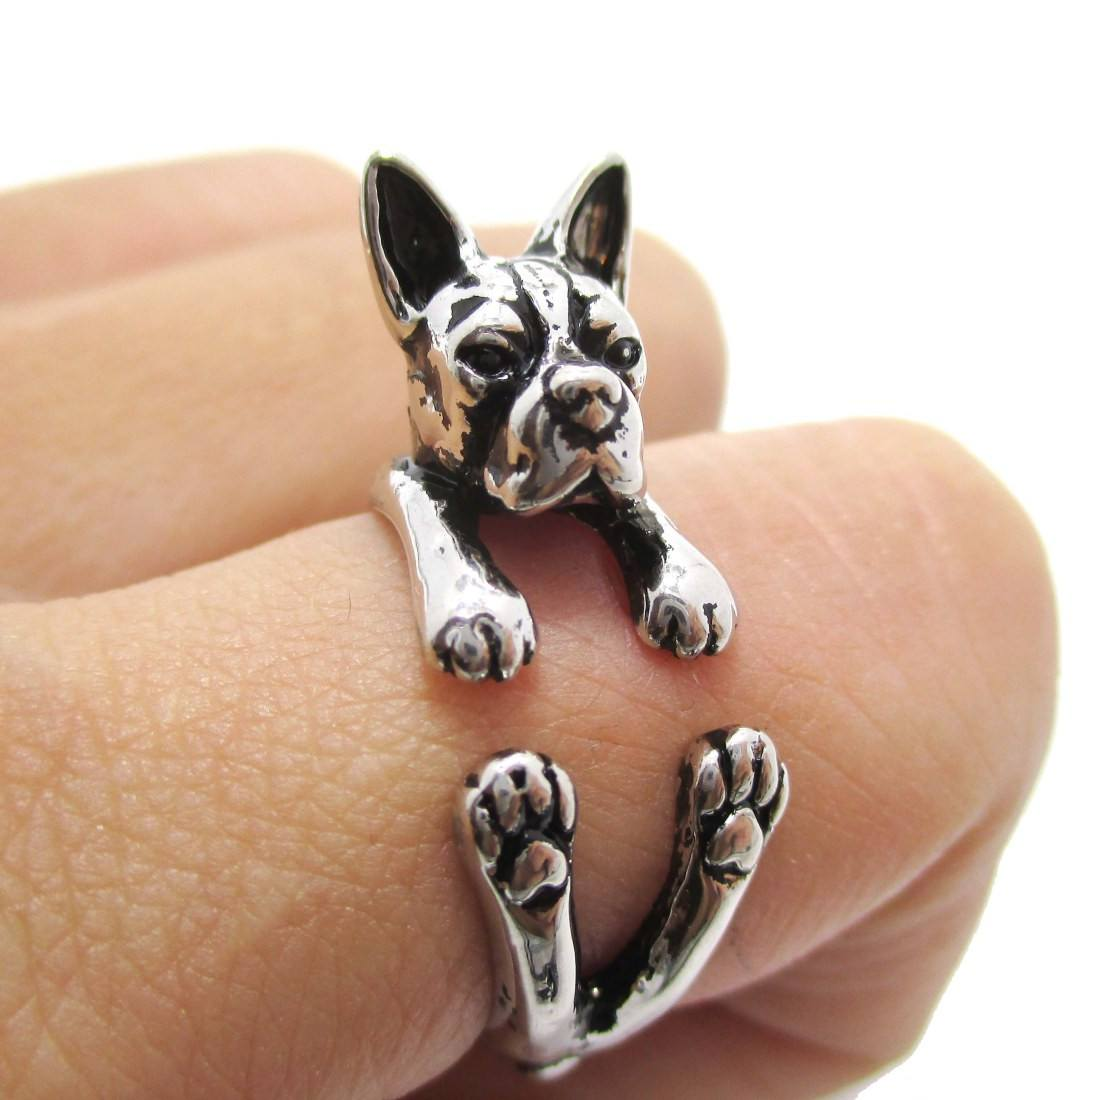 Boston Terrier Puppy Shaped Animal Ring in Shiny Silver